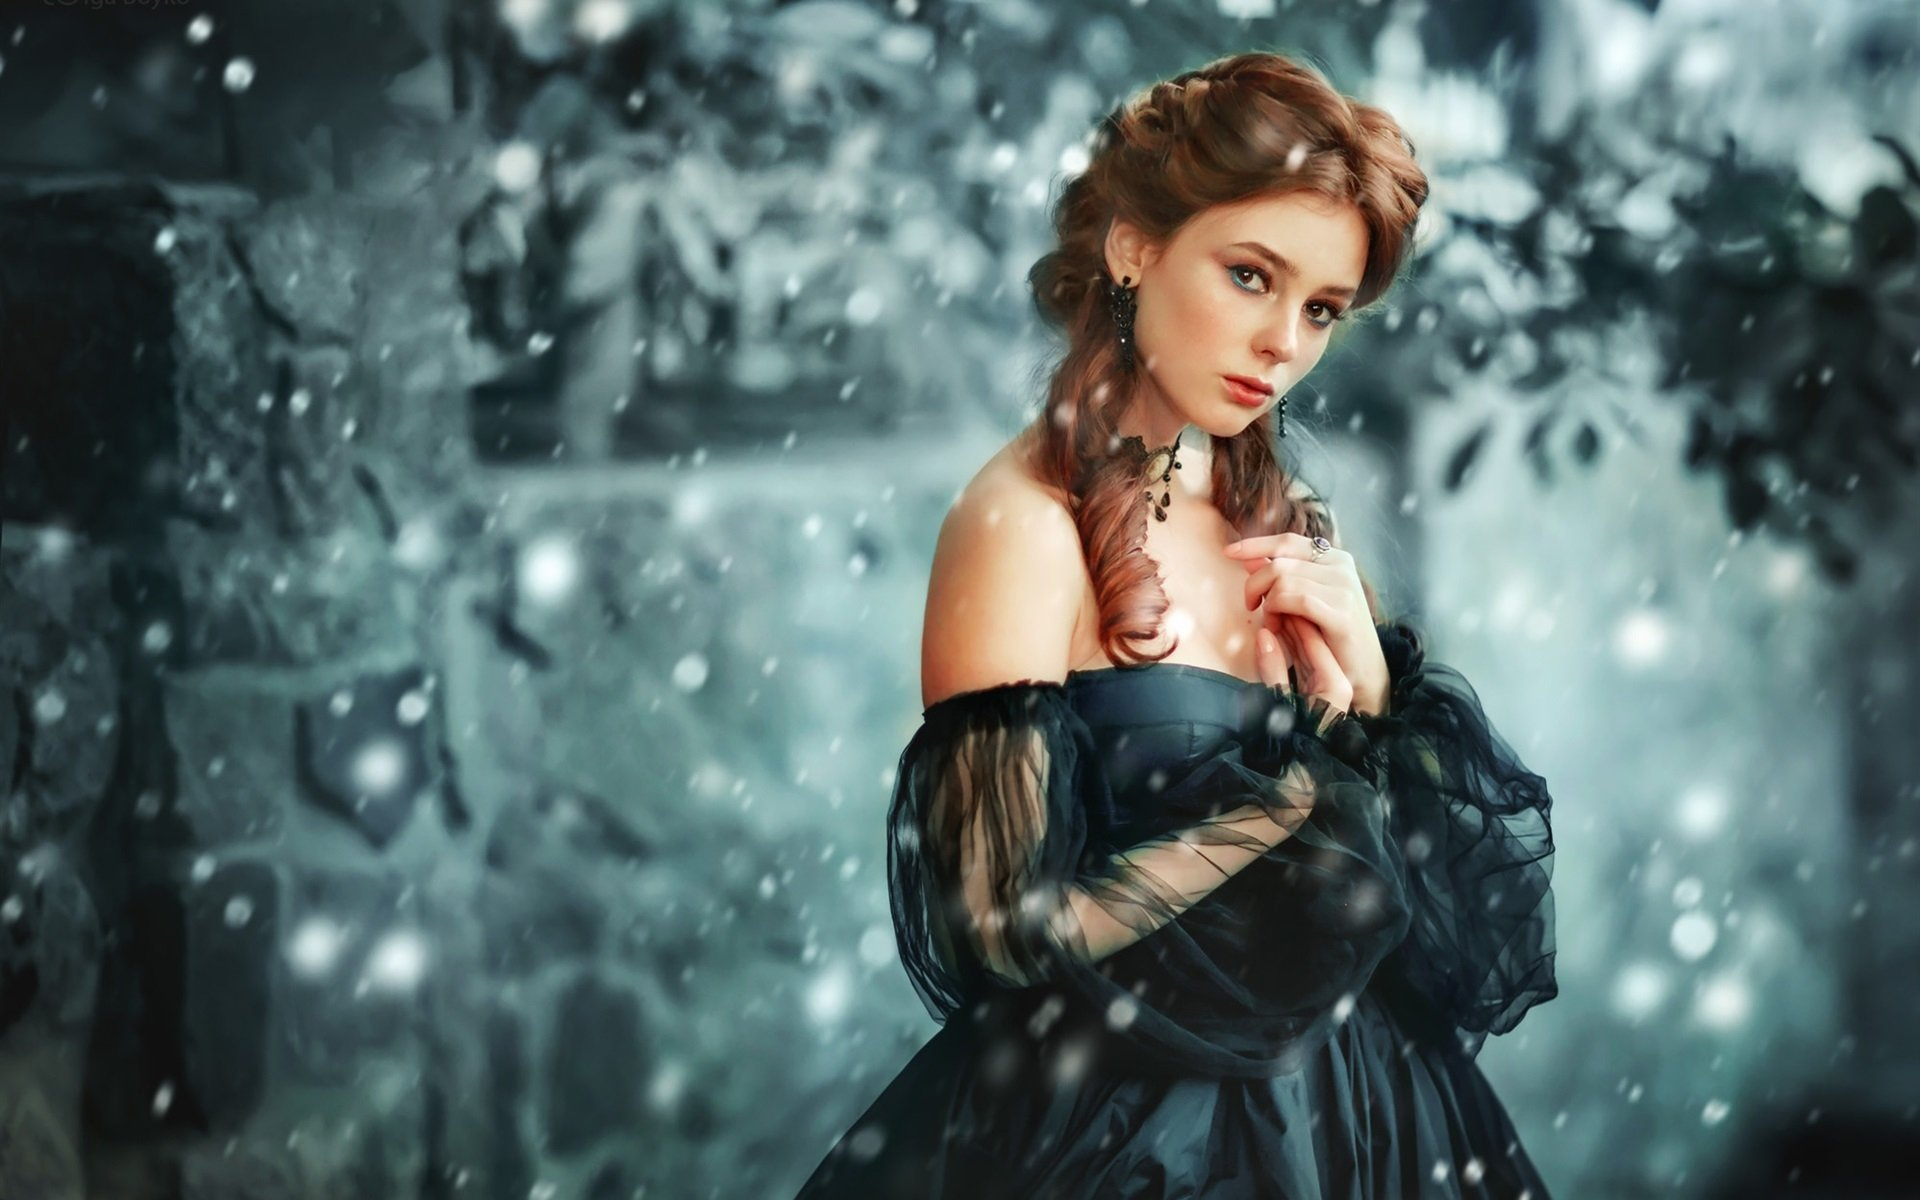 Wallpapers Id - - Princess With Long Black Hair , HD Wallpaper & Backgrounds